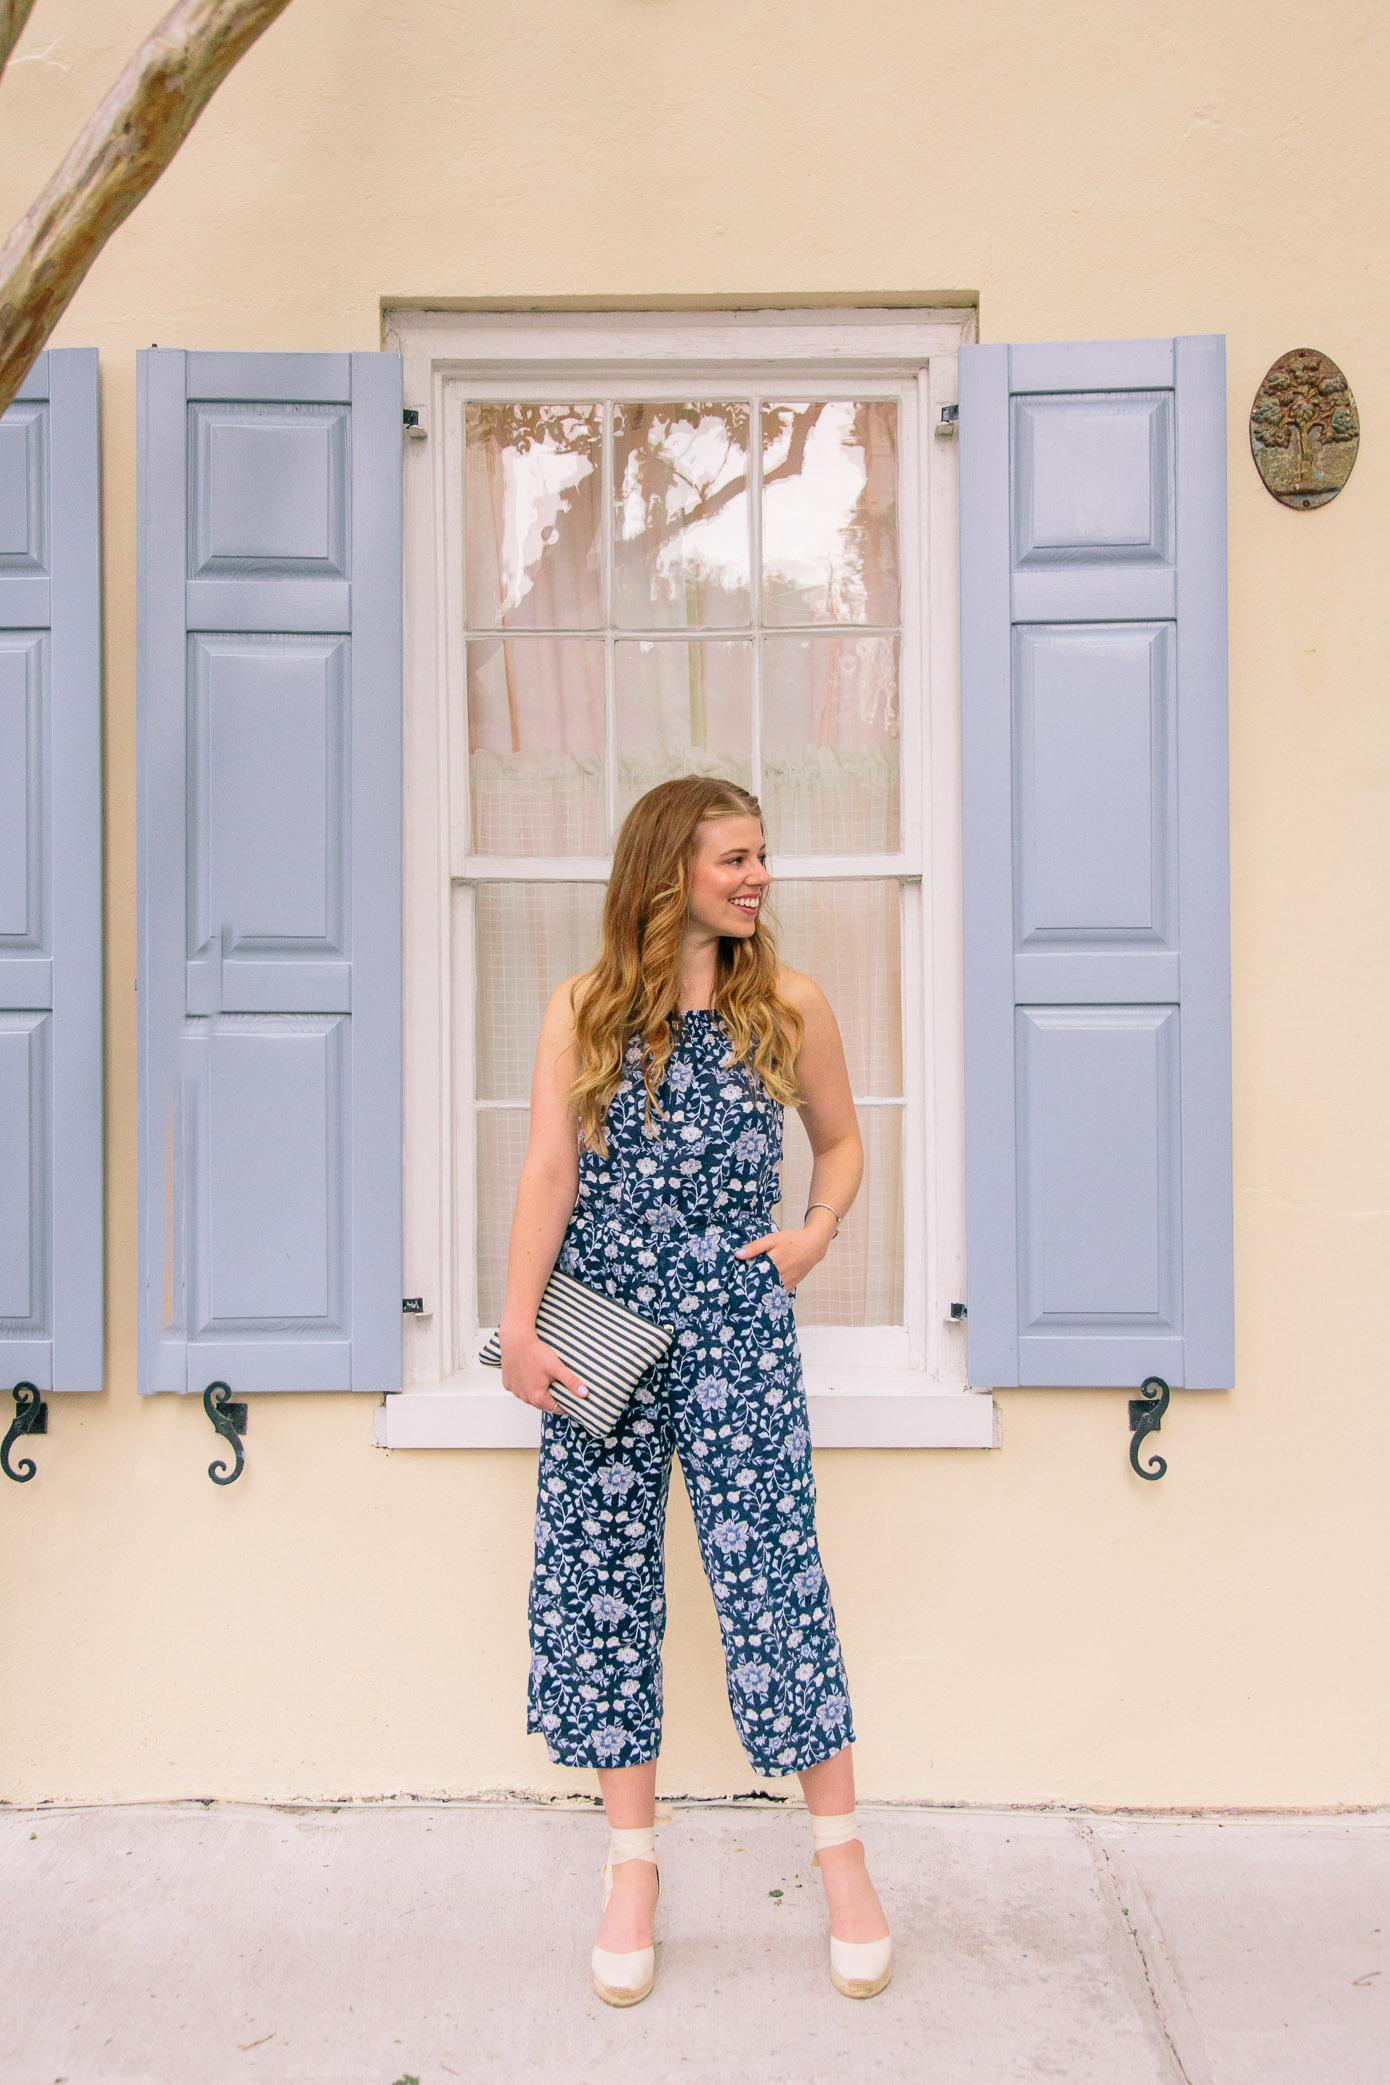 Comfy Navy Floral Jumpsuit for Summer | Jumpsuit under $50 | Louella Reese Life & Style Blog